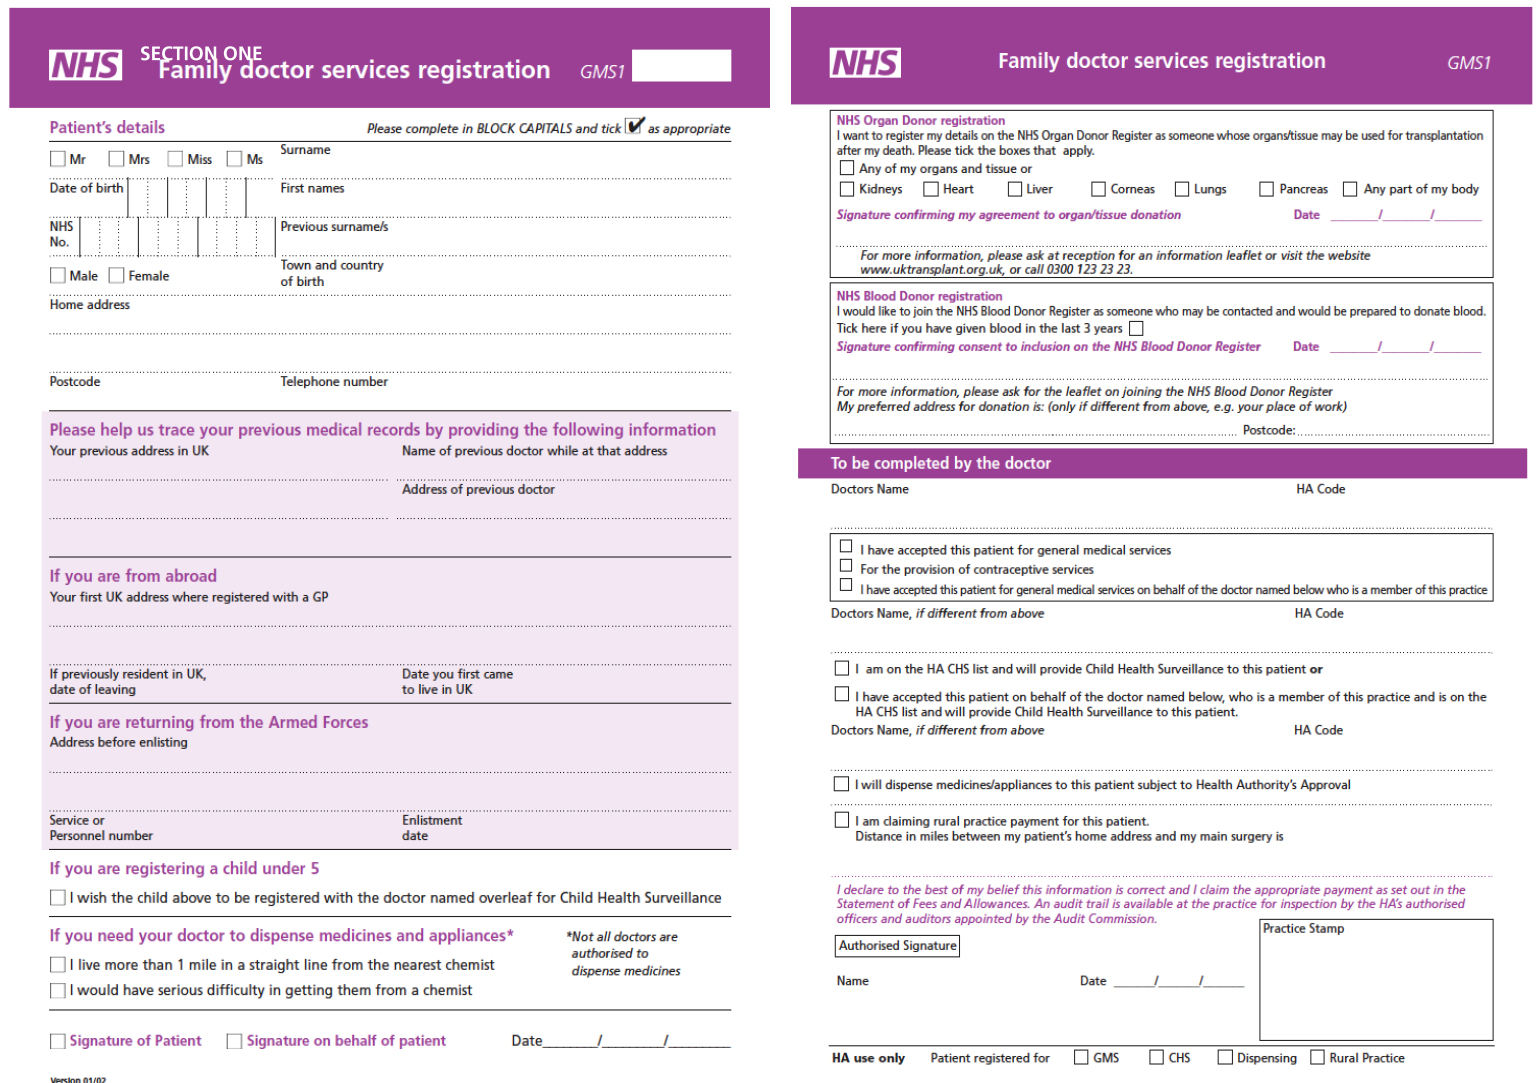 Registration guidance - As long as you live in the United Kingdom, you can register with us as a patient.You will be able to access our full range of services except for home visits*. In order to qualify for a home visit, you will not only need to live in the UK but live within Bramley, Cottingley, or Middleton and have a postcode that begins with: LS13 1, LS13 3, LS13 2, LS13 4, LS12 3, LS11 0, LS10 4.